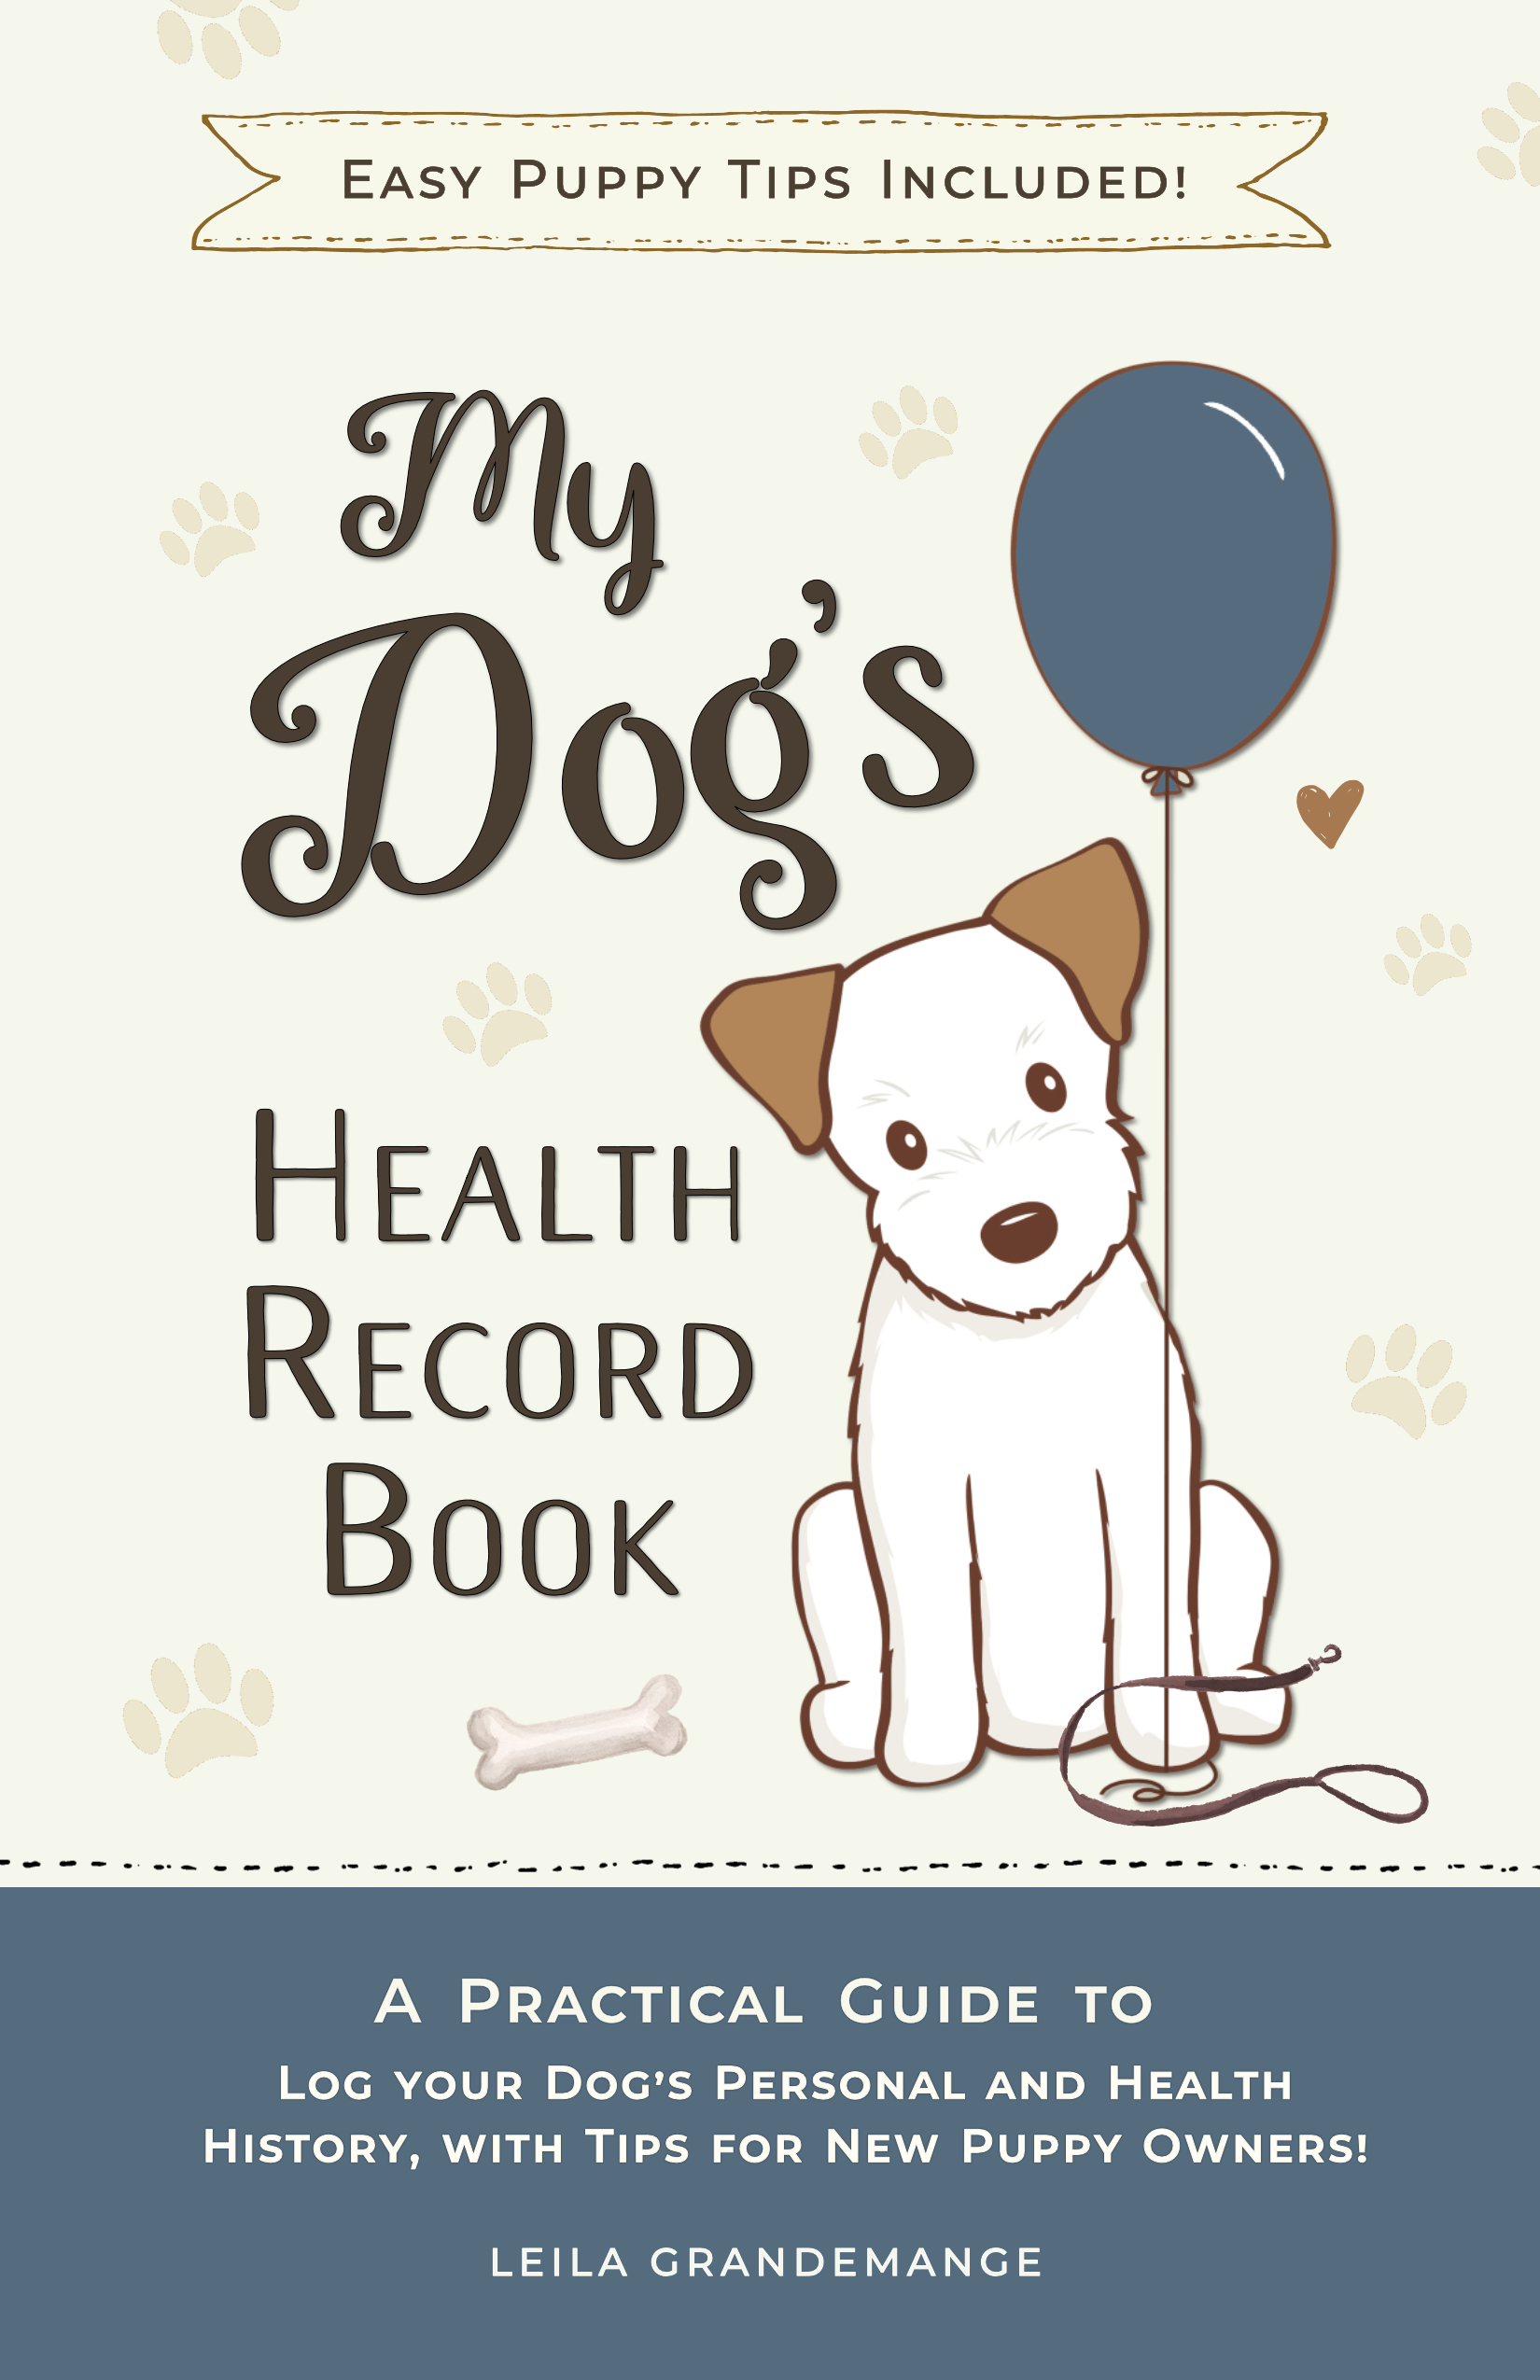 The Perfect Pet Record Book! New Puppy Tips Included!